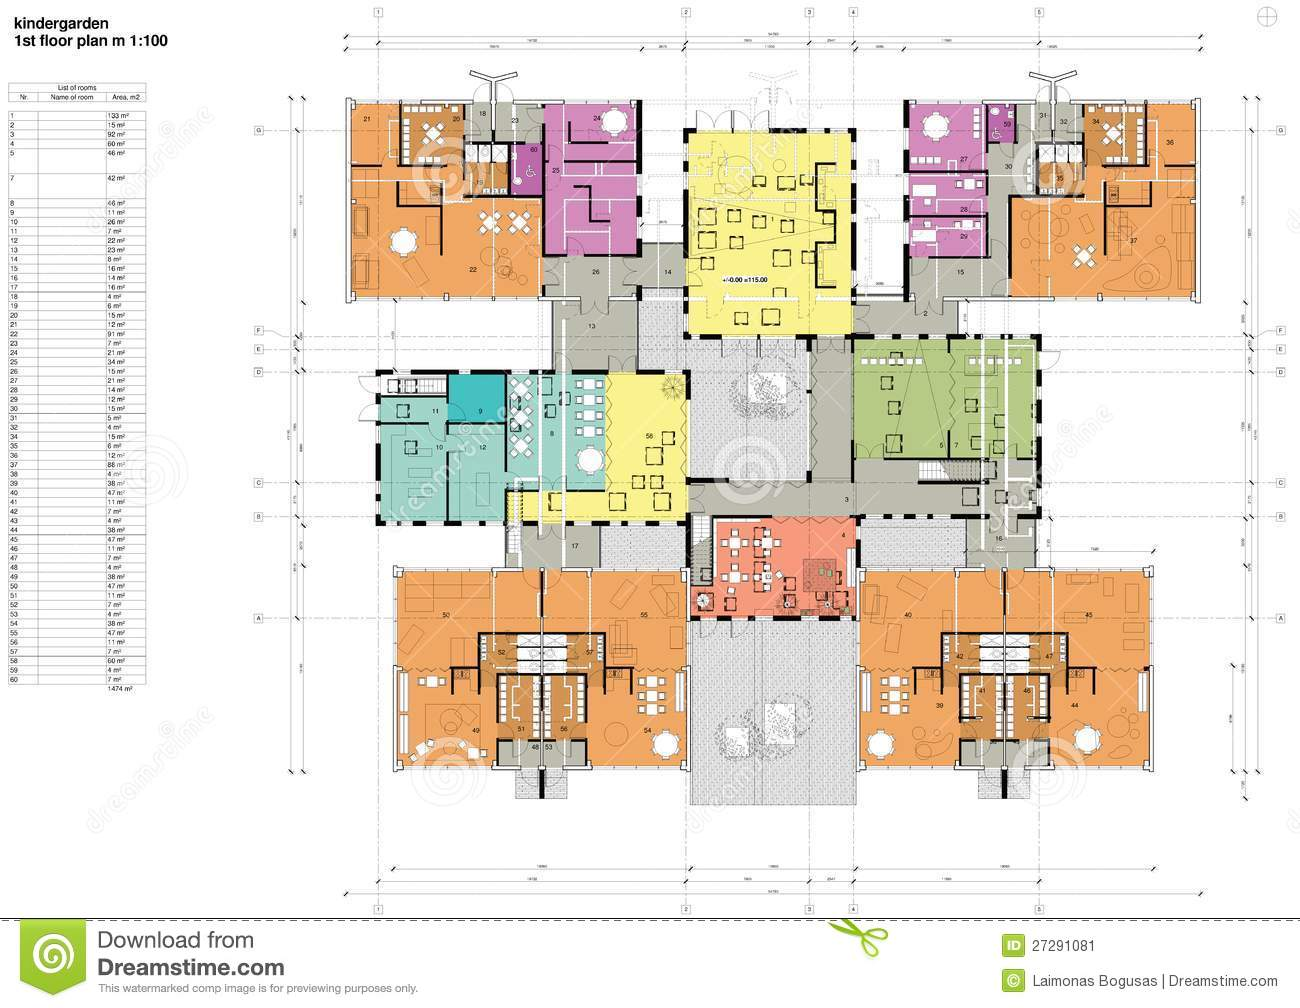 Z Arrangement Classroom Design Disadvantages ~ Kindergarten floor plan examples thefloors